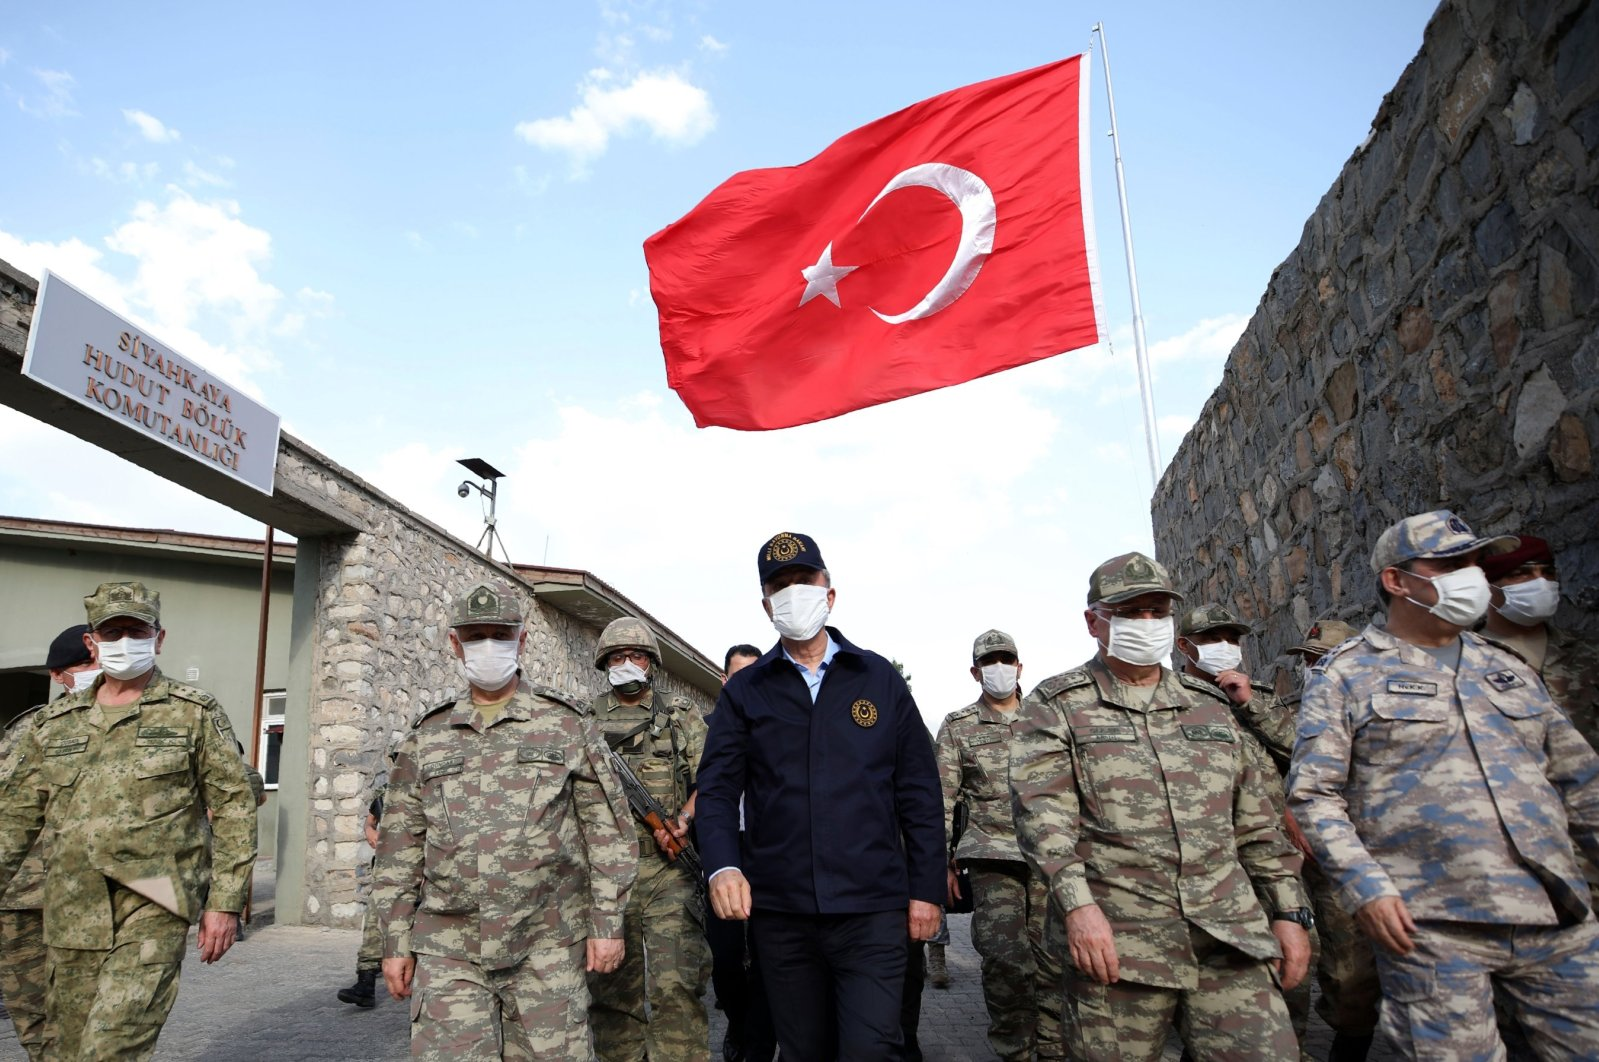 Turkish Defense Minister Hulusi Akar (C) visits Turkish troops at the border with Iraq, in Hakkari, Turkey, June 19, 2020. (File photo courtesy of Turkish Ministry of National Defense)